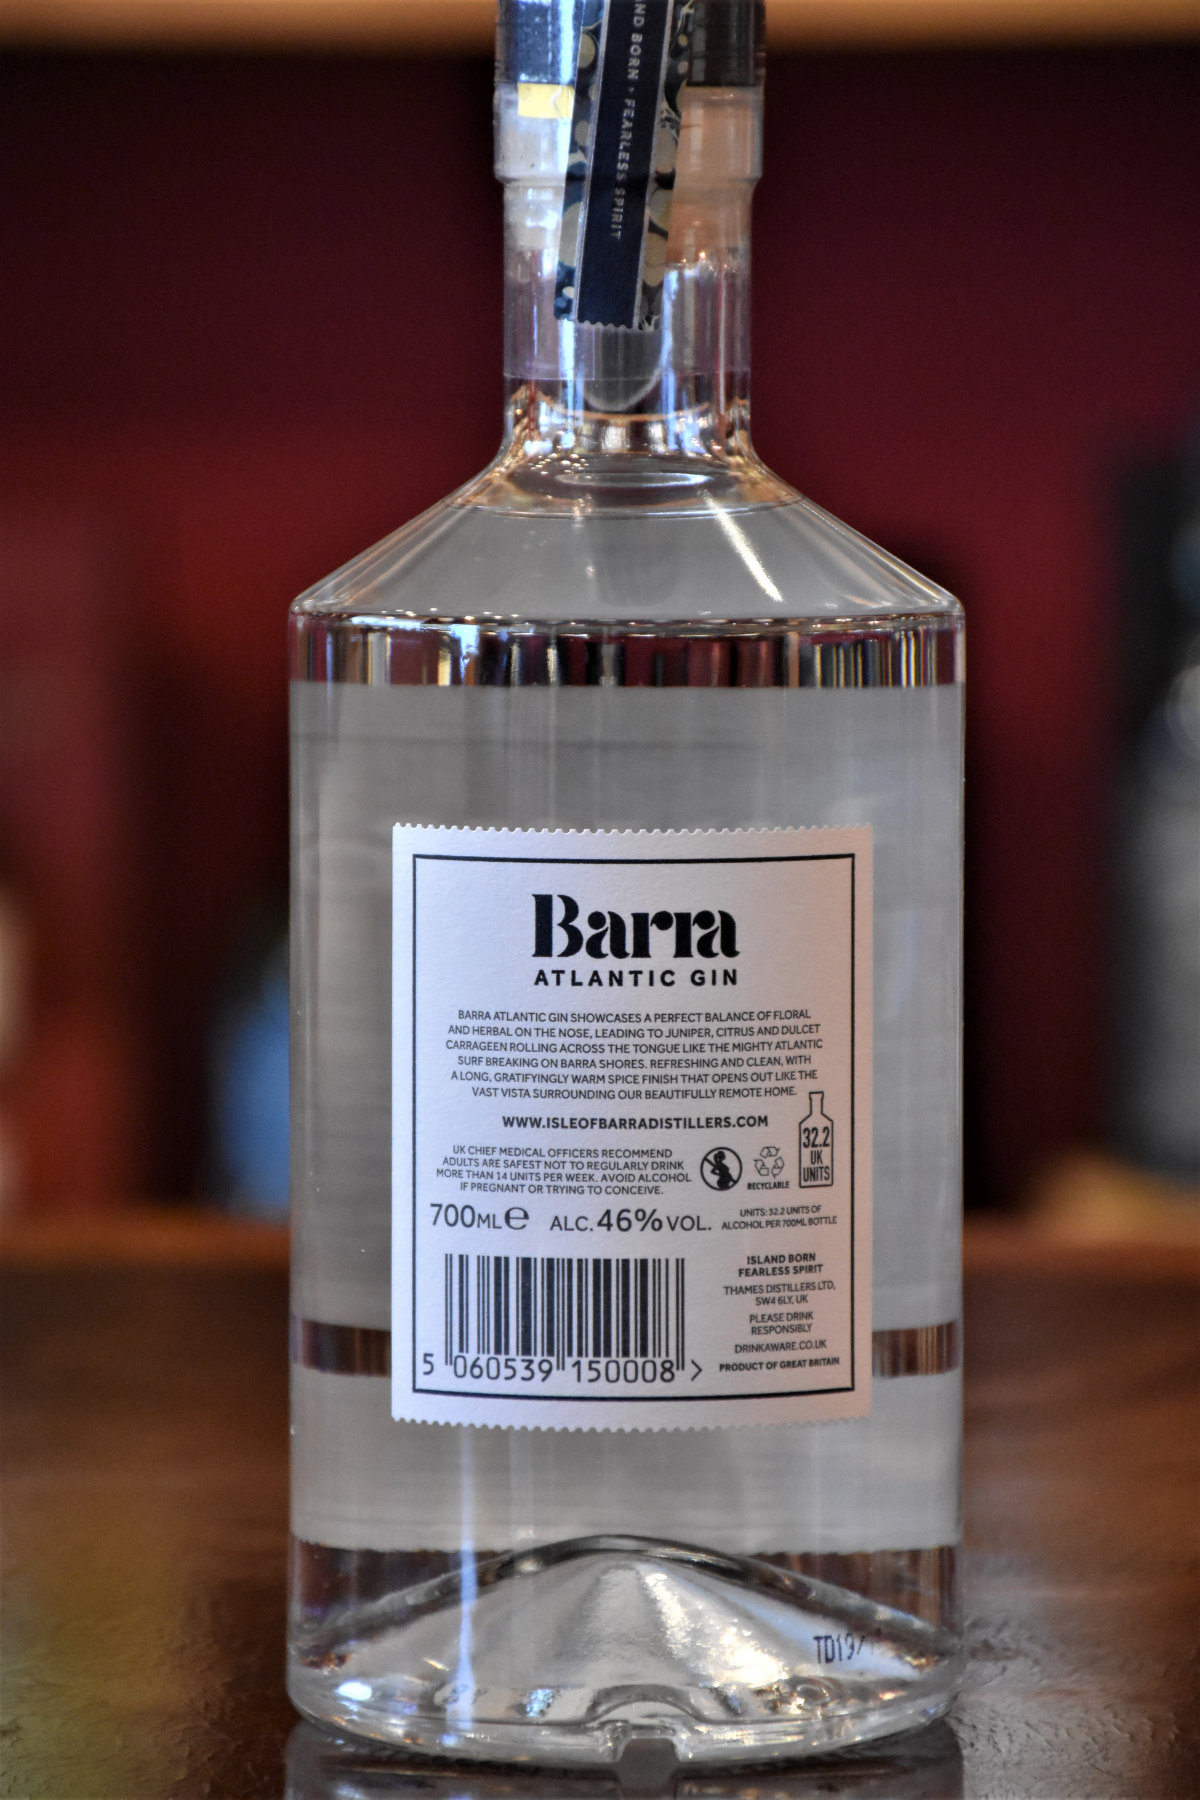 Barra Atlantic Gin, Isle of Barra Distillers- Orignal Bottling, 46% Alc.Vol.